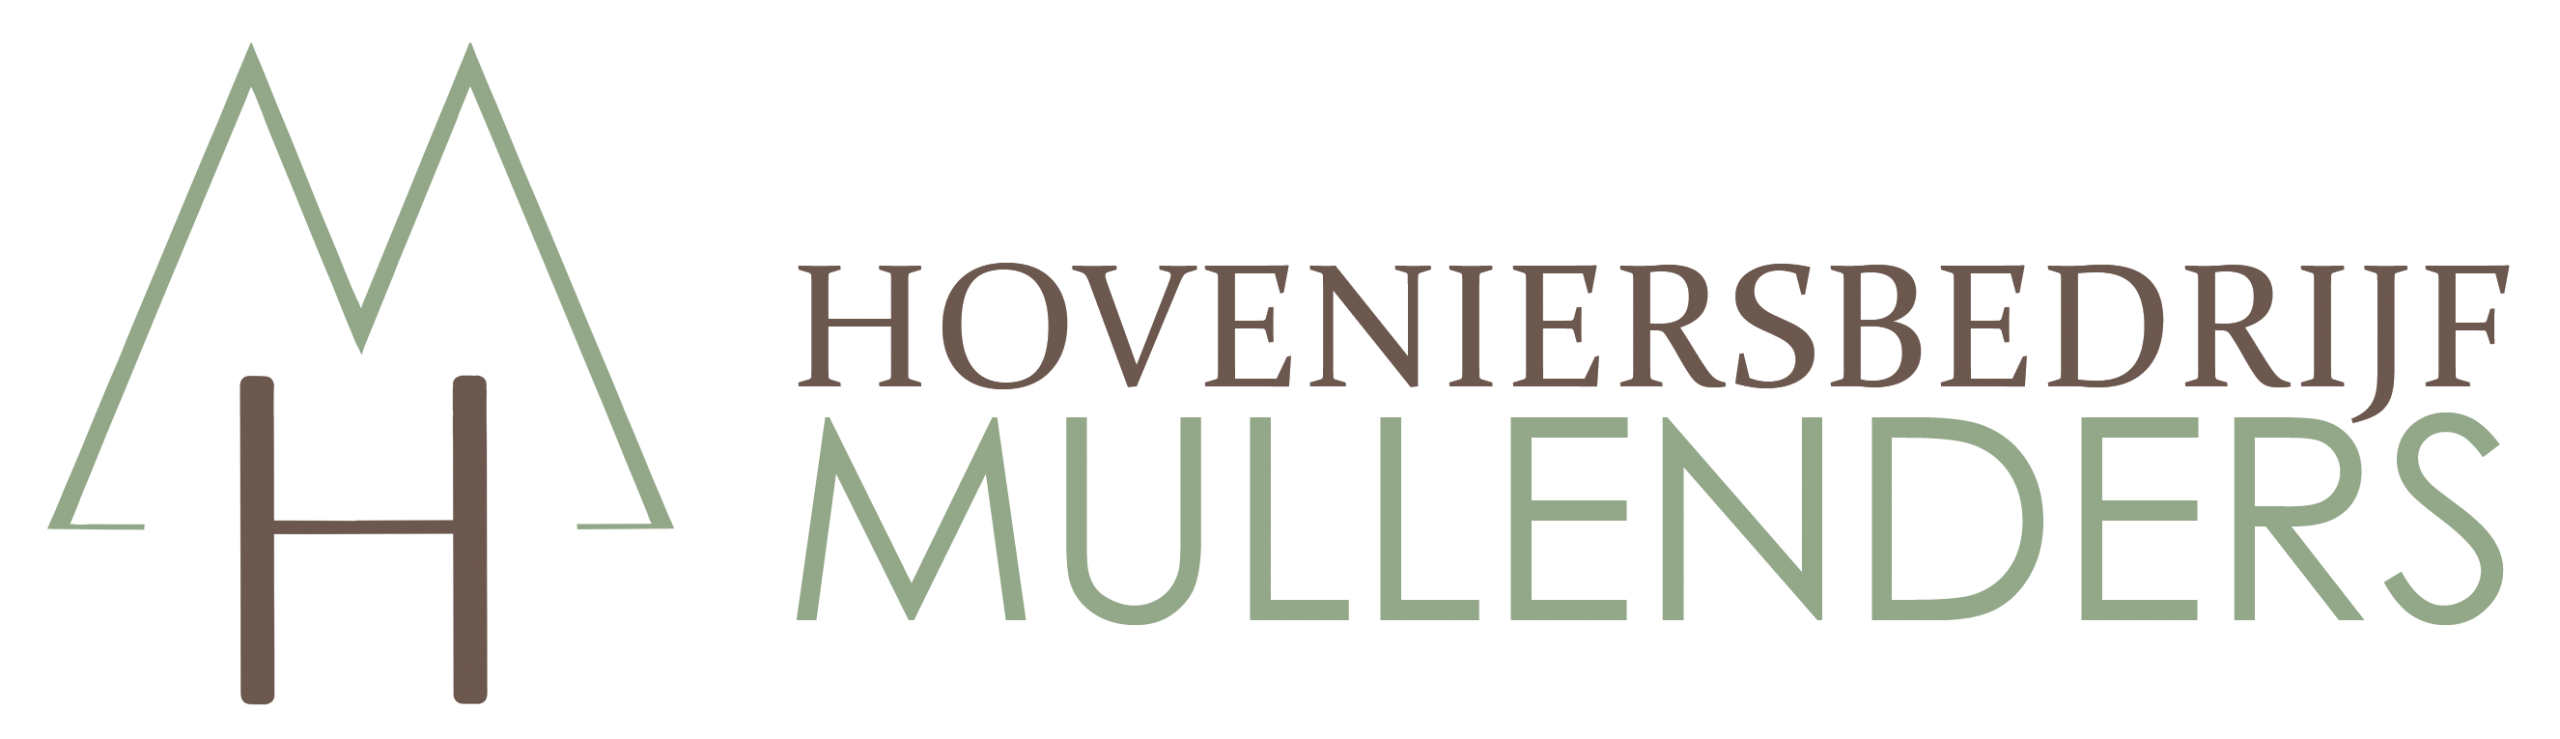 Mullenders Hoveniers